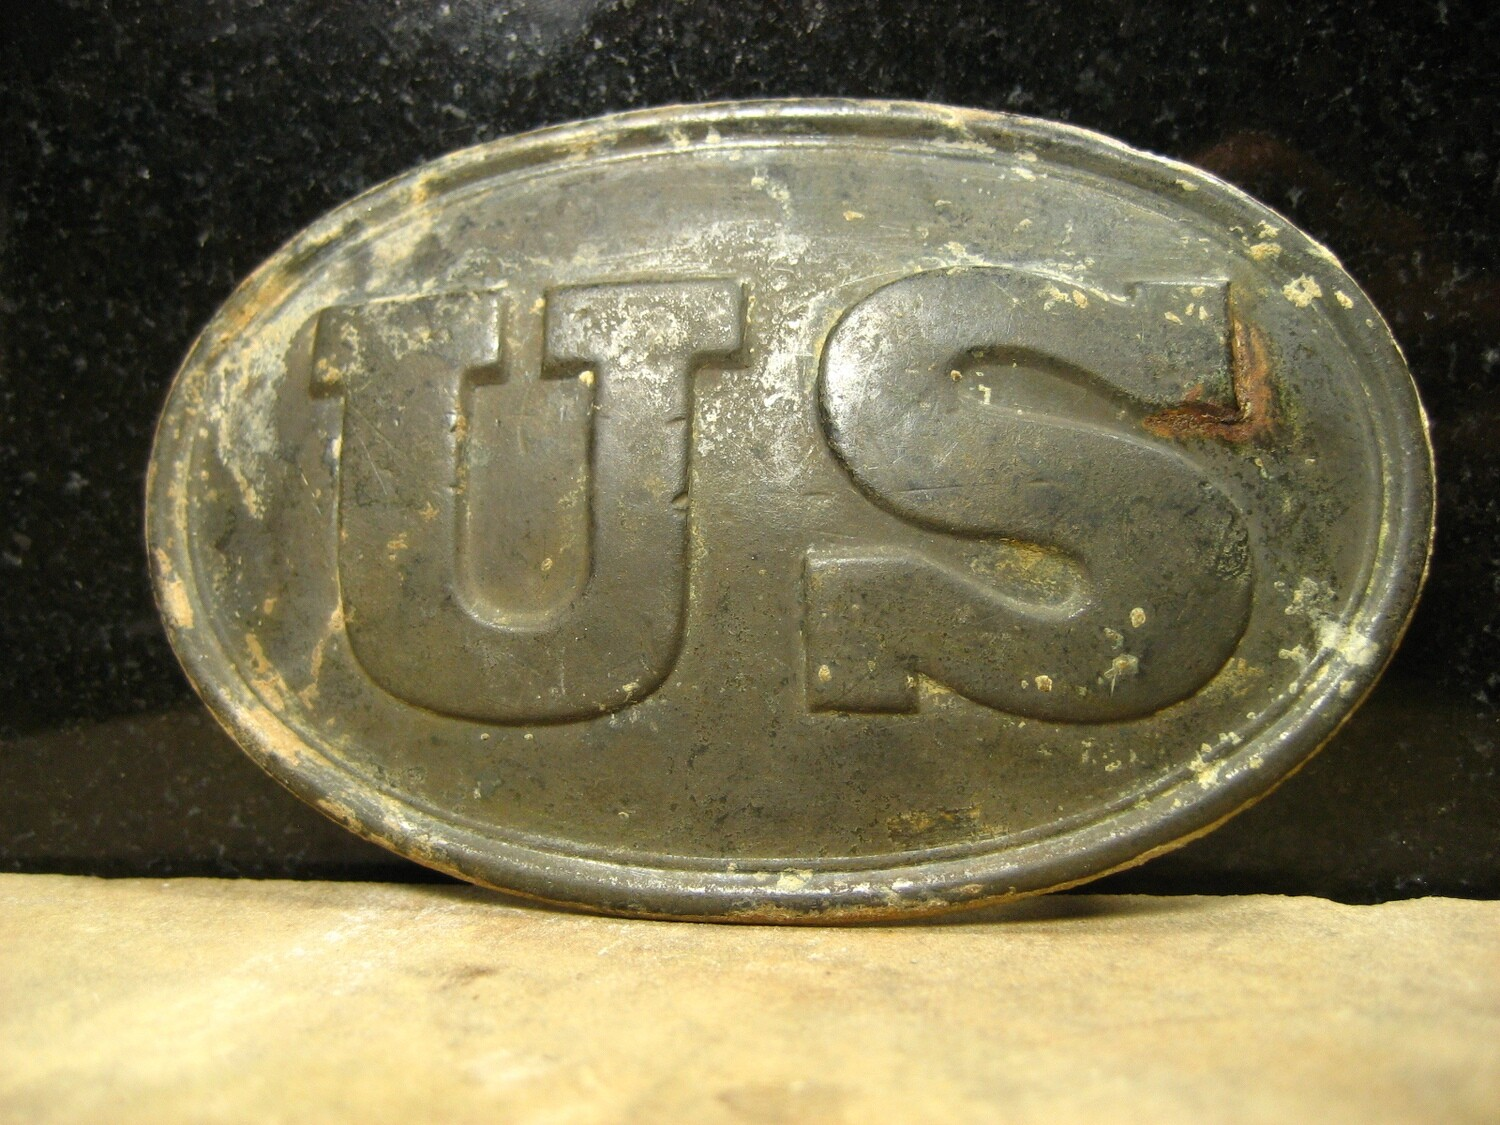 JUST ADDED ON 9/5 - GETTYSBURG - DEVIL'S DEN AREA - ROSENSTEEL FAMILY - Very Nice U.S. Box Plate with One Hook Remaining